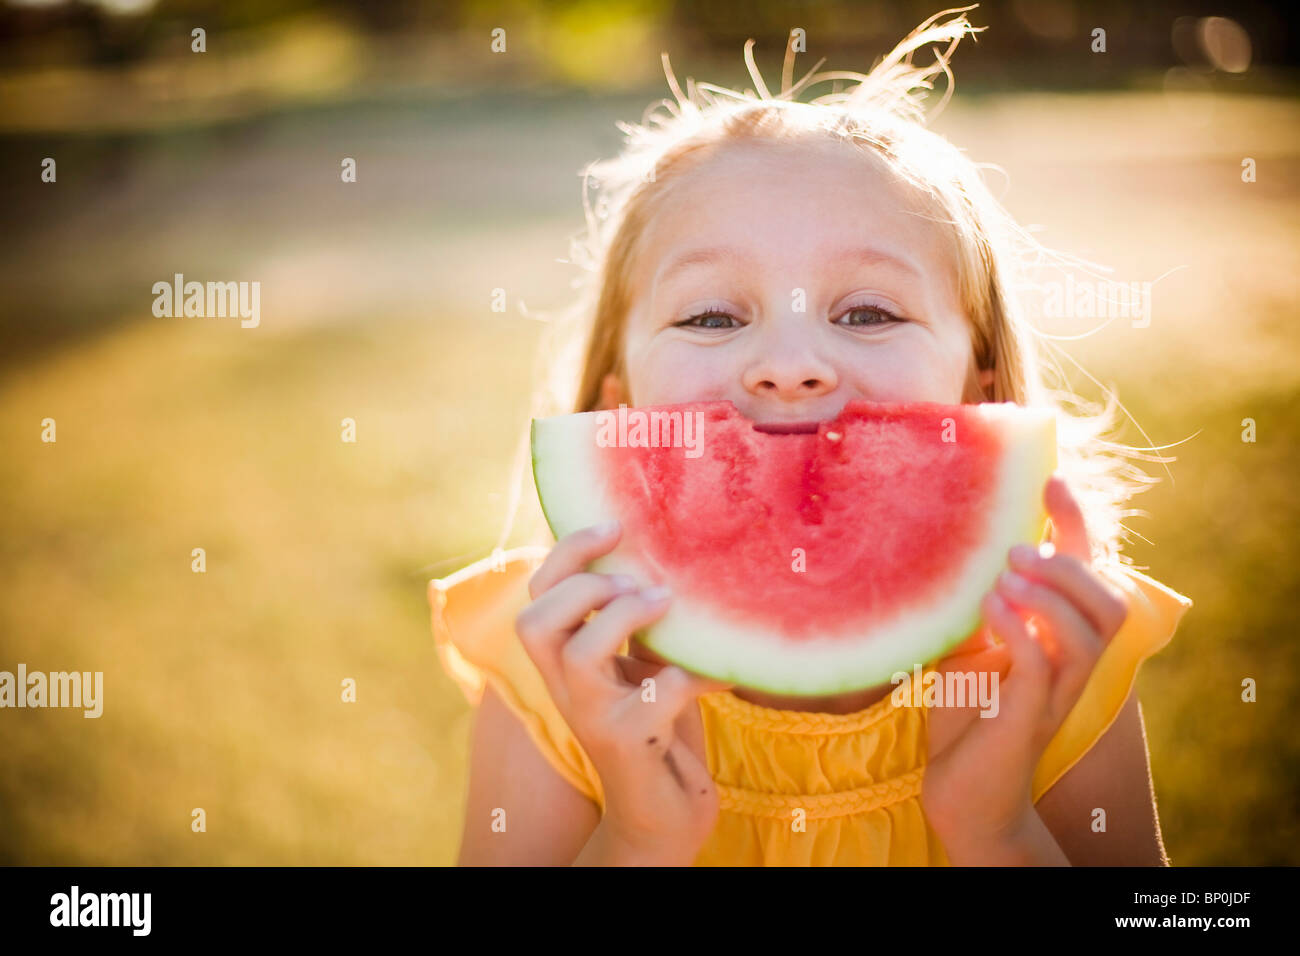 Young girl making smile with watermelon - Stock Image